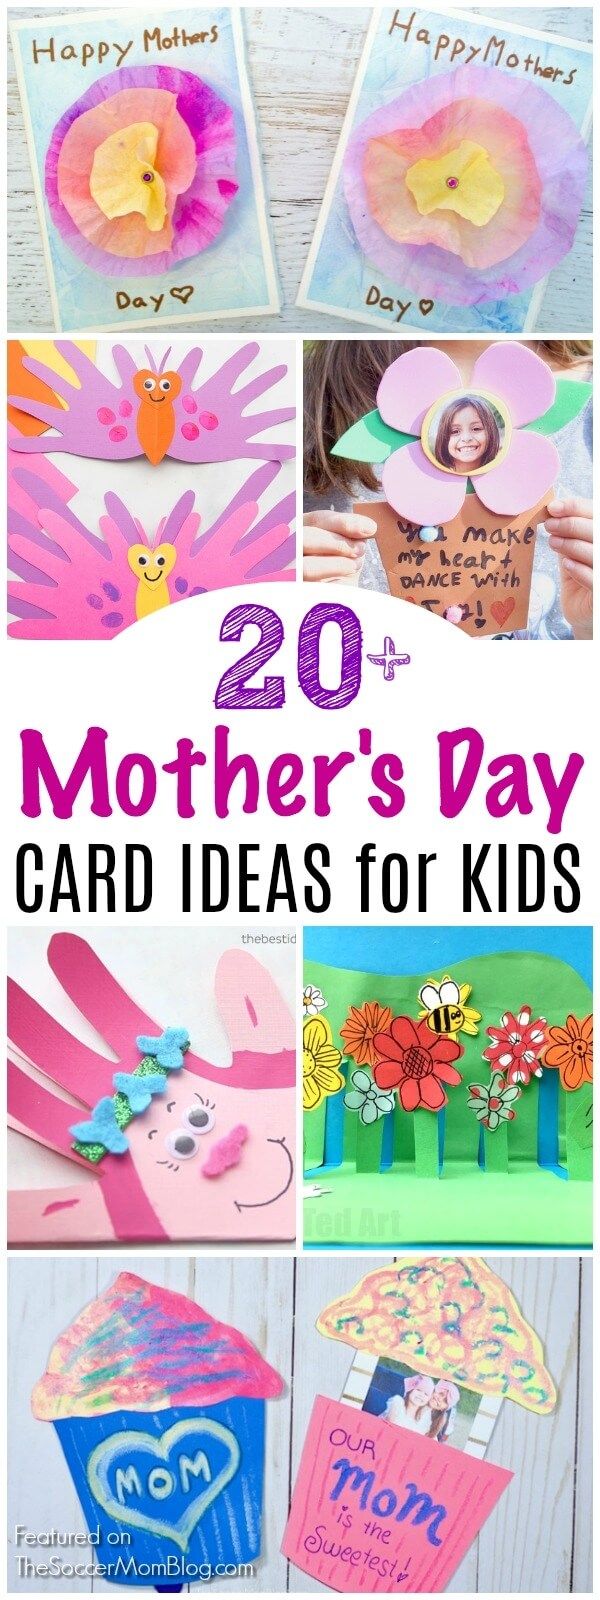 A collection of the cutest Mother's Day Card Ideas and homemade gifts that kids can make themselves. Handprint cards, pop-up cards, photo cards, and more adorable keepsakes that mom will treasure!